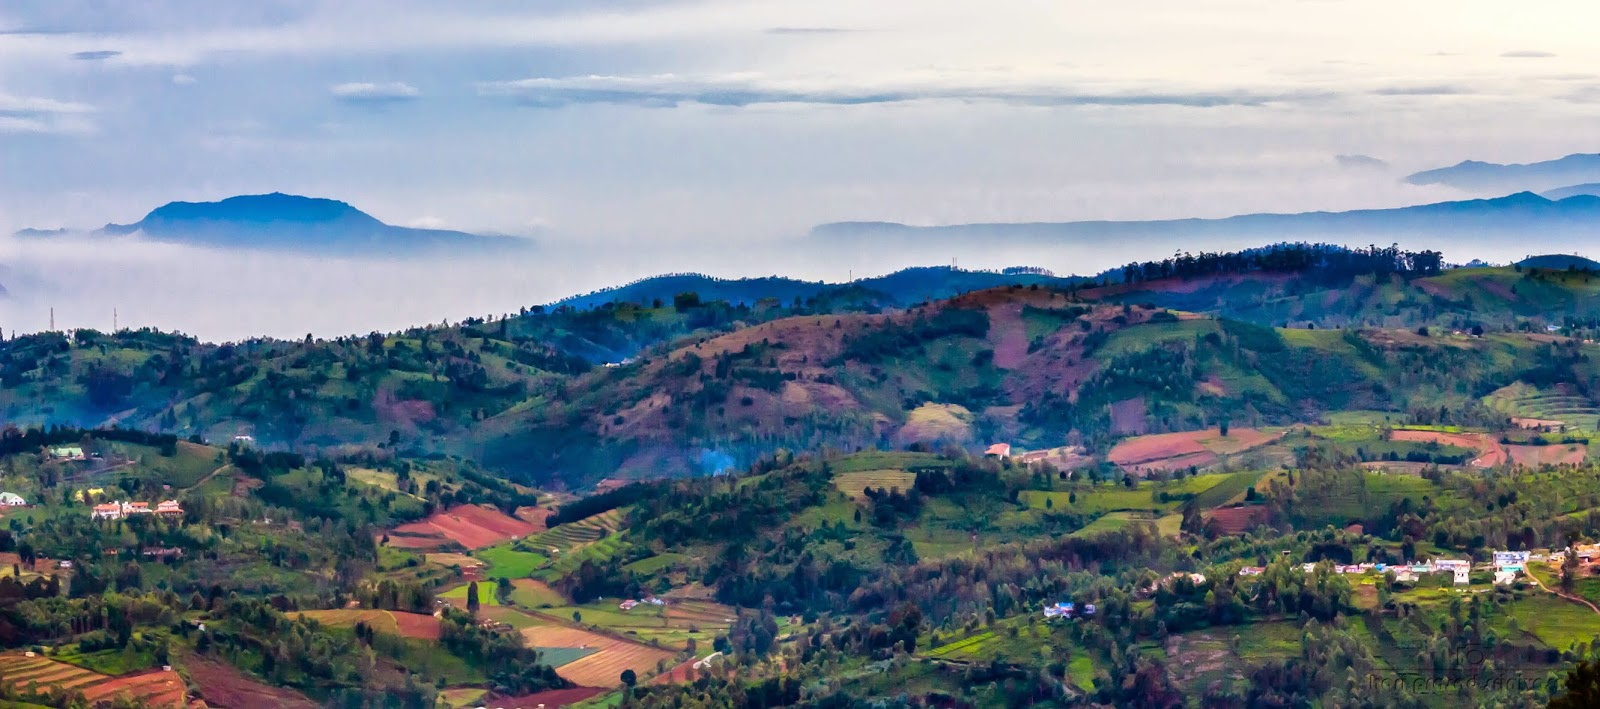 Ooty landscape photo